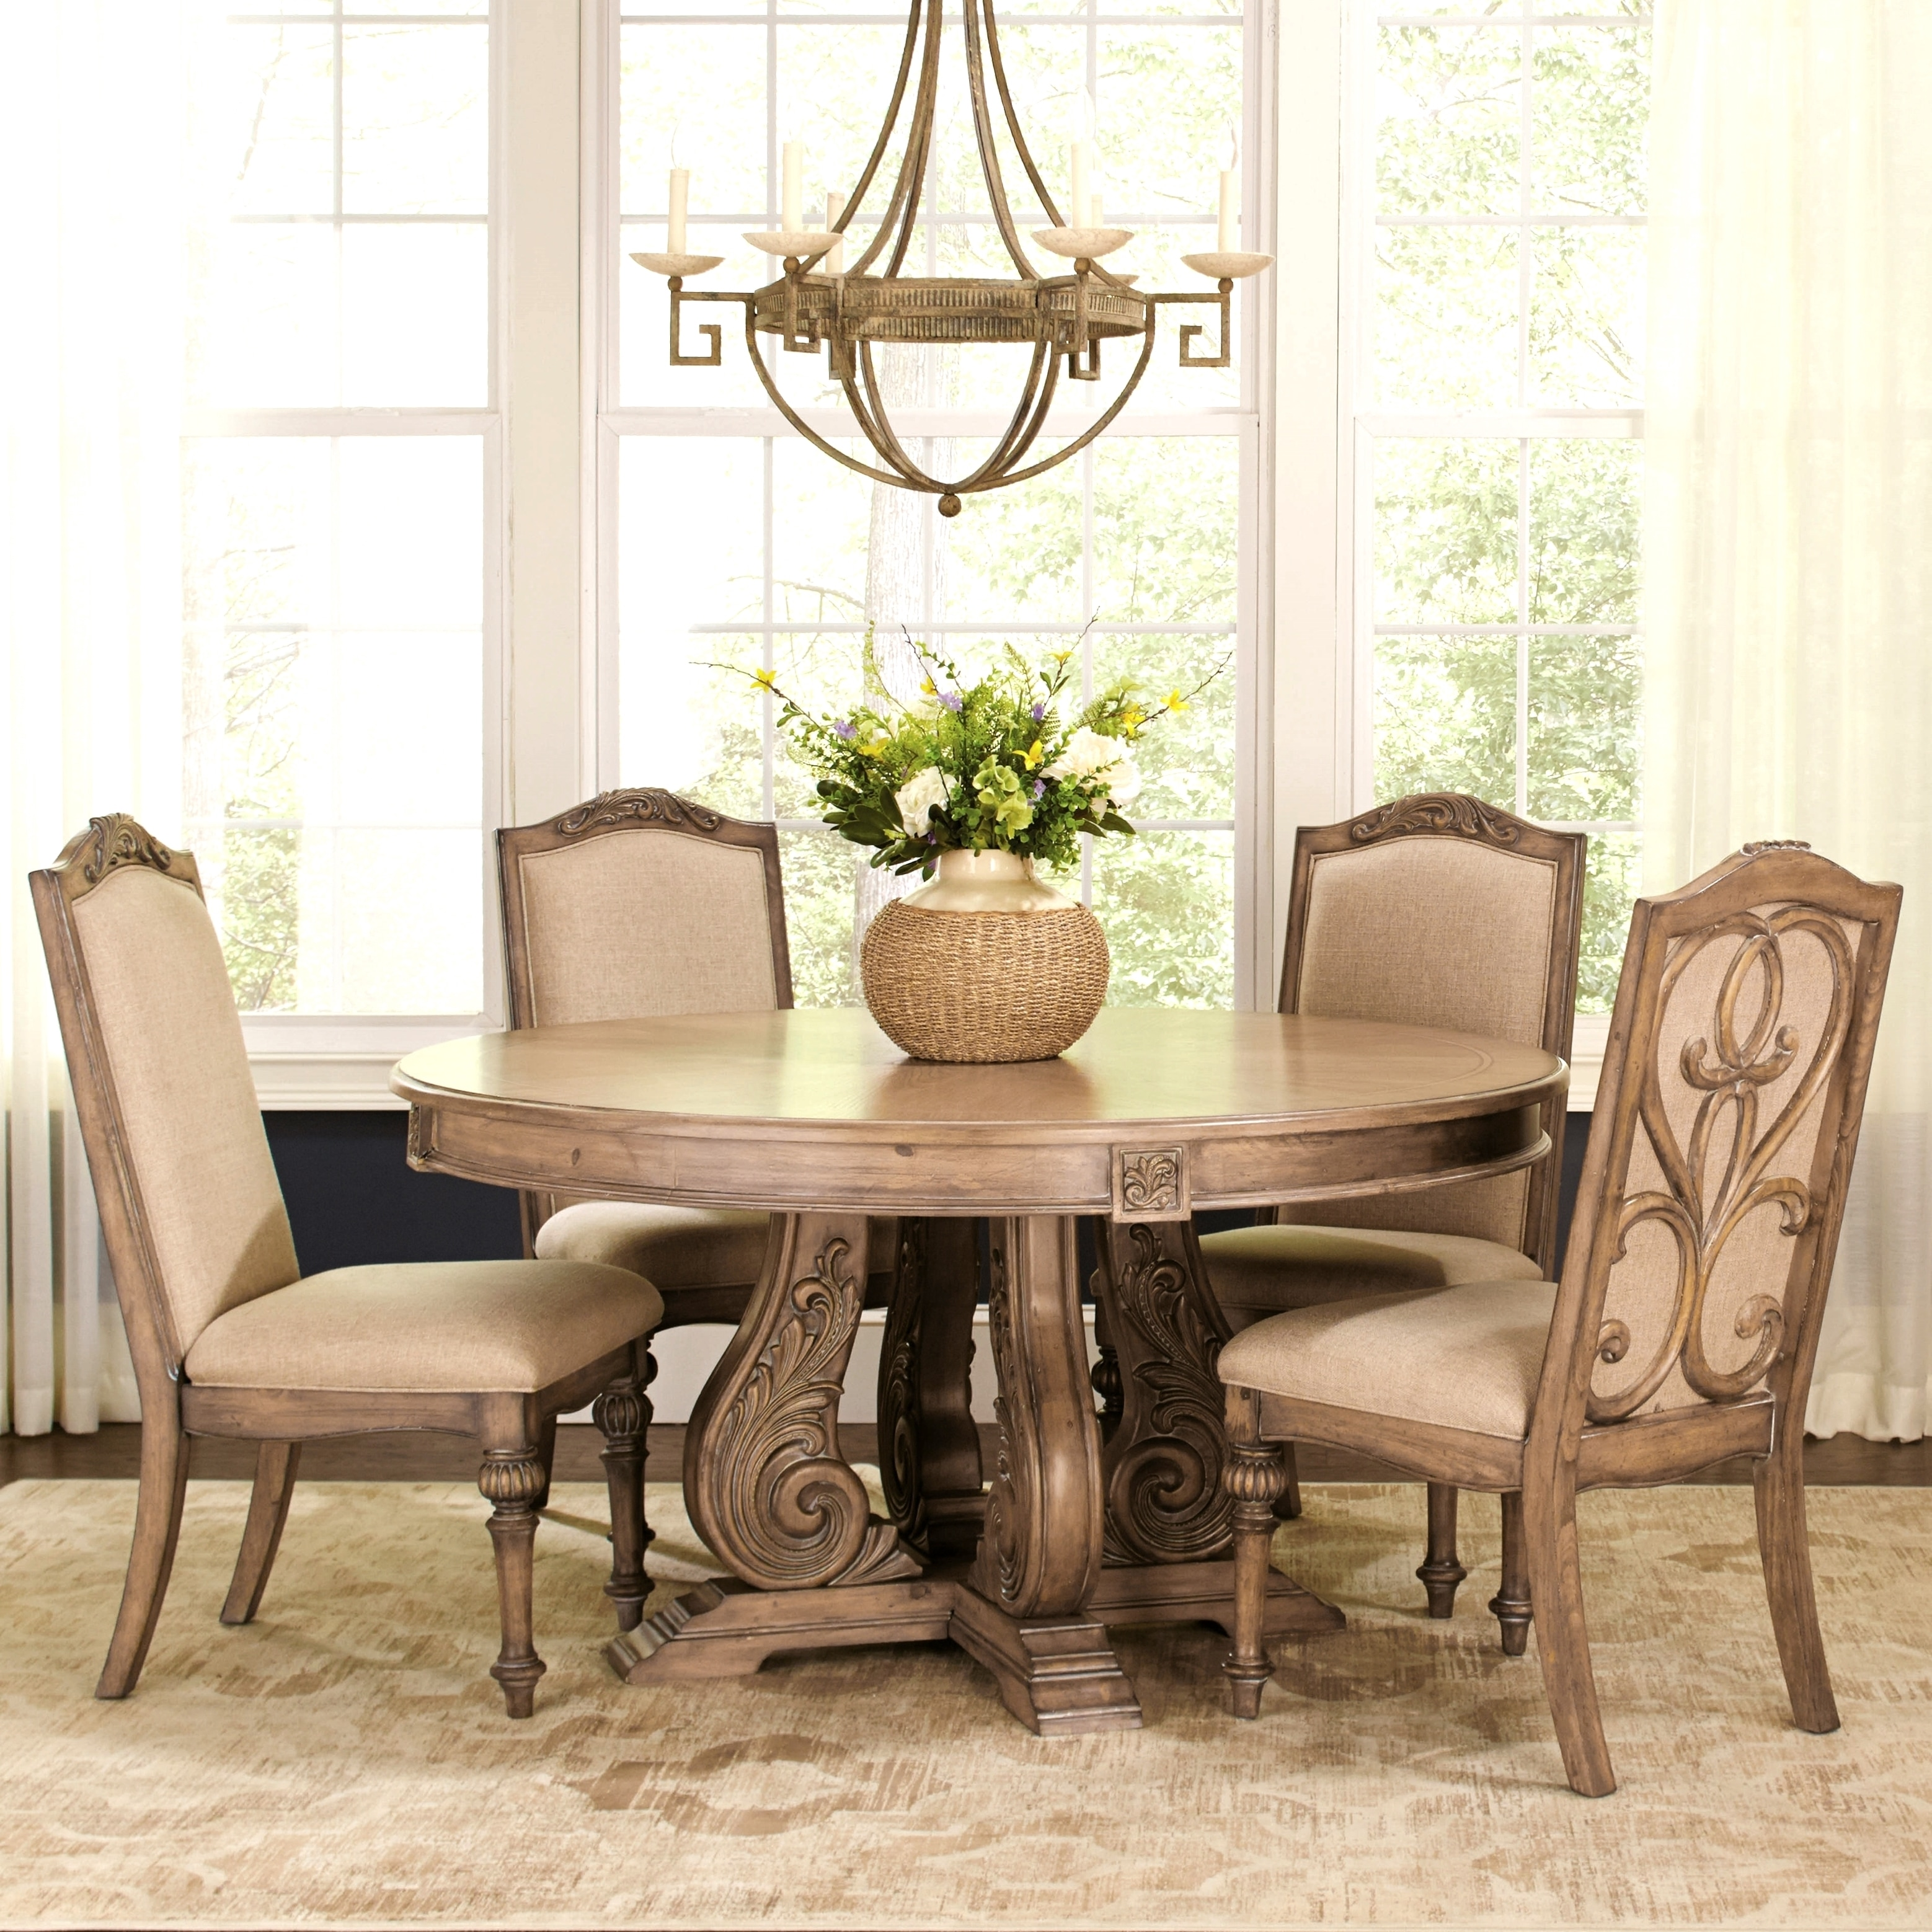 La Bauhinia French Antique Carved Wood Design Round Dining Set With Buffet  Server   Free Shipping Today   Overstock   21073664